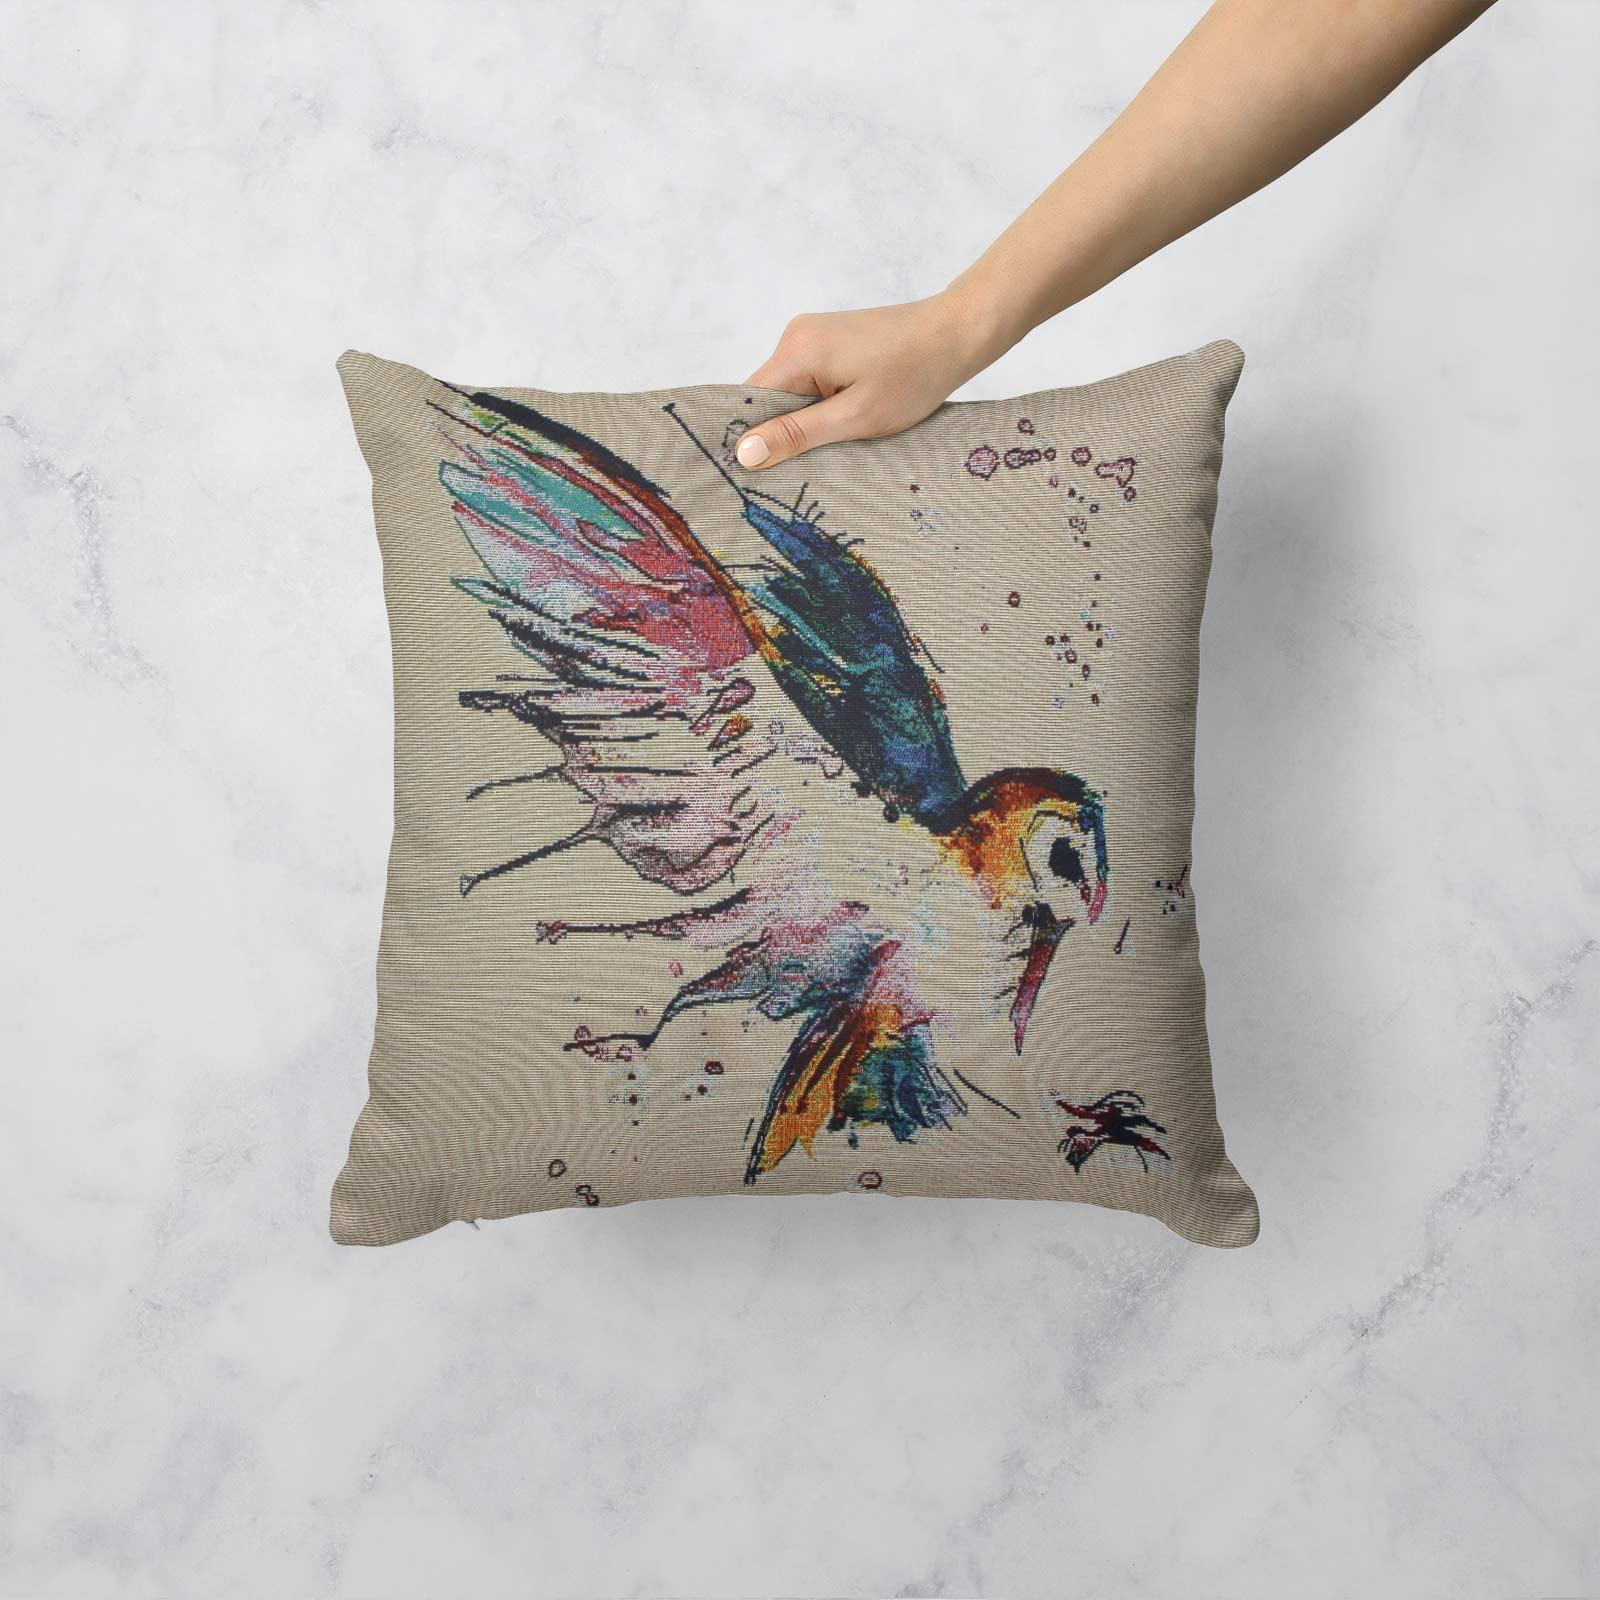 Tapestry-Cushion-Covers-Vintage-Pillow-Cover-Collection-18-034-45cm-Filled-Cushions thumbnail 5